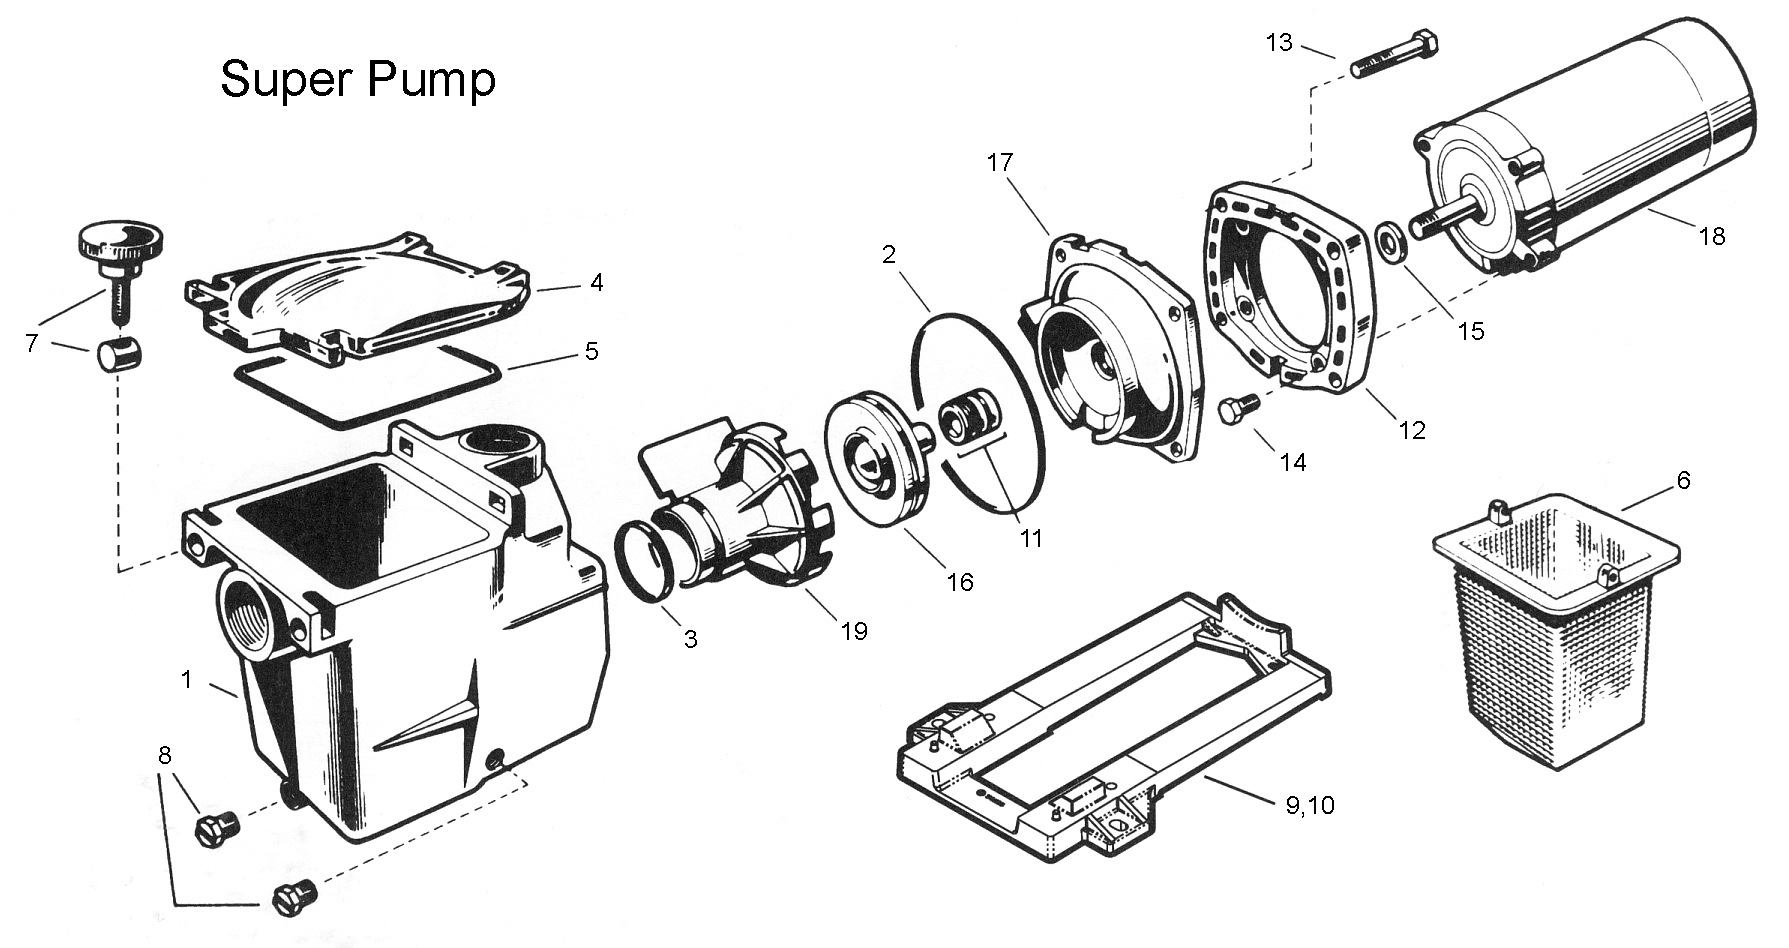 Hayward Super Pump 2 Parts Diagram